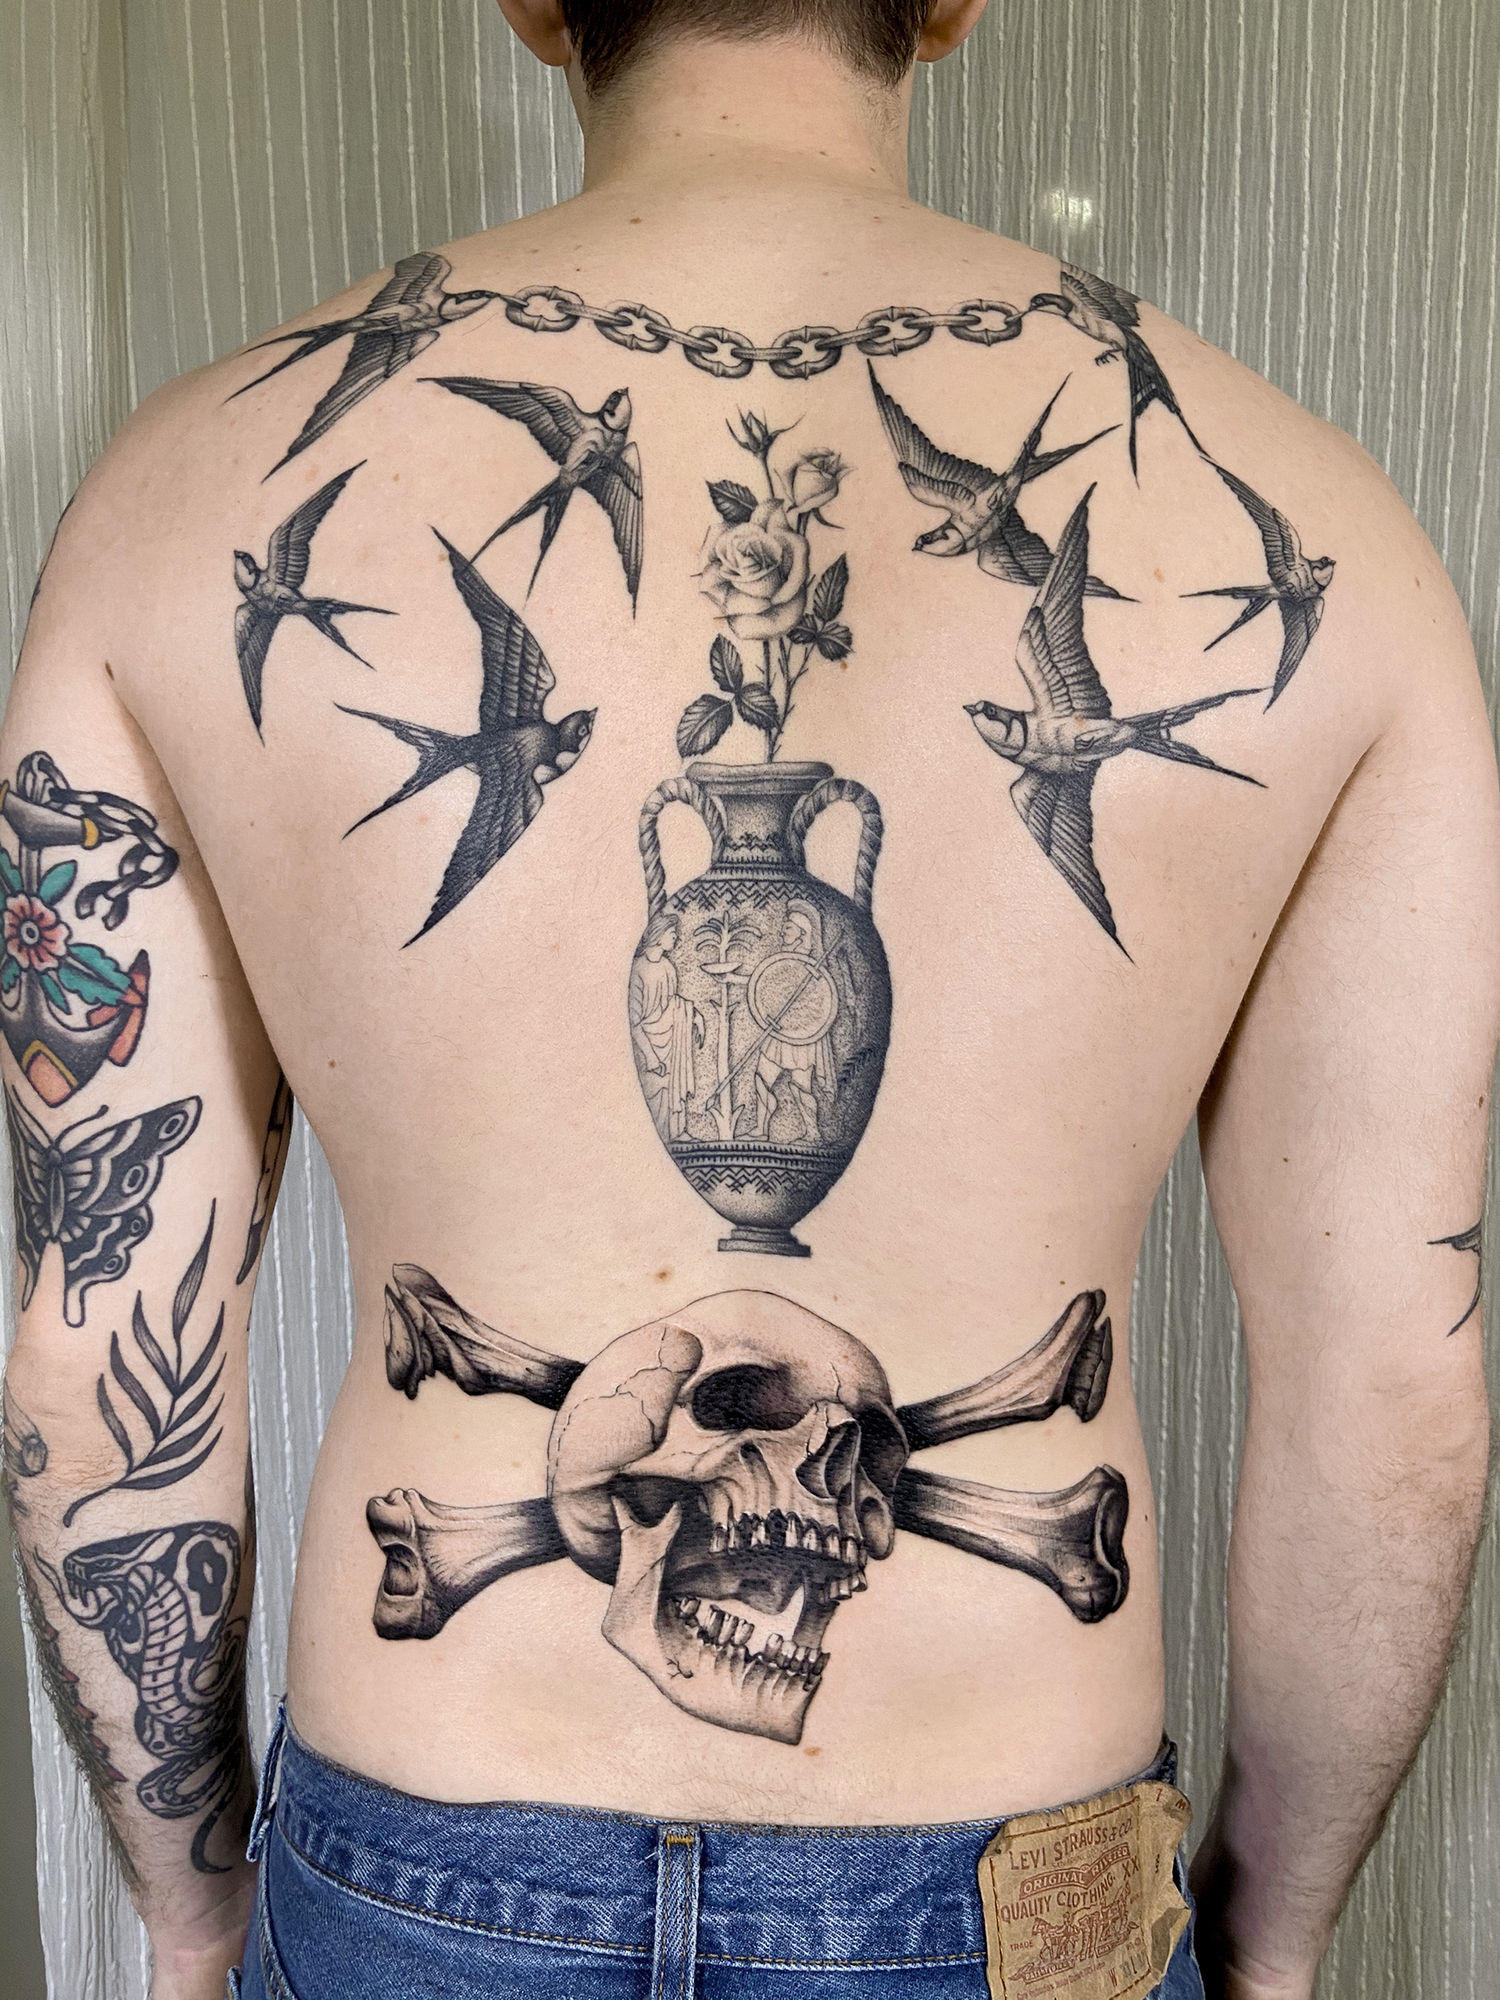 swallow fine-line tattoos on back, sang bleu london, skull tattoo